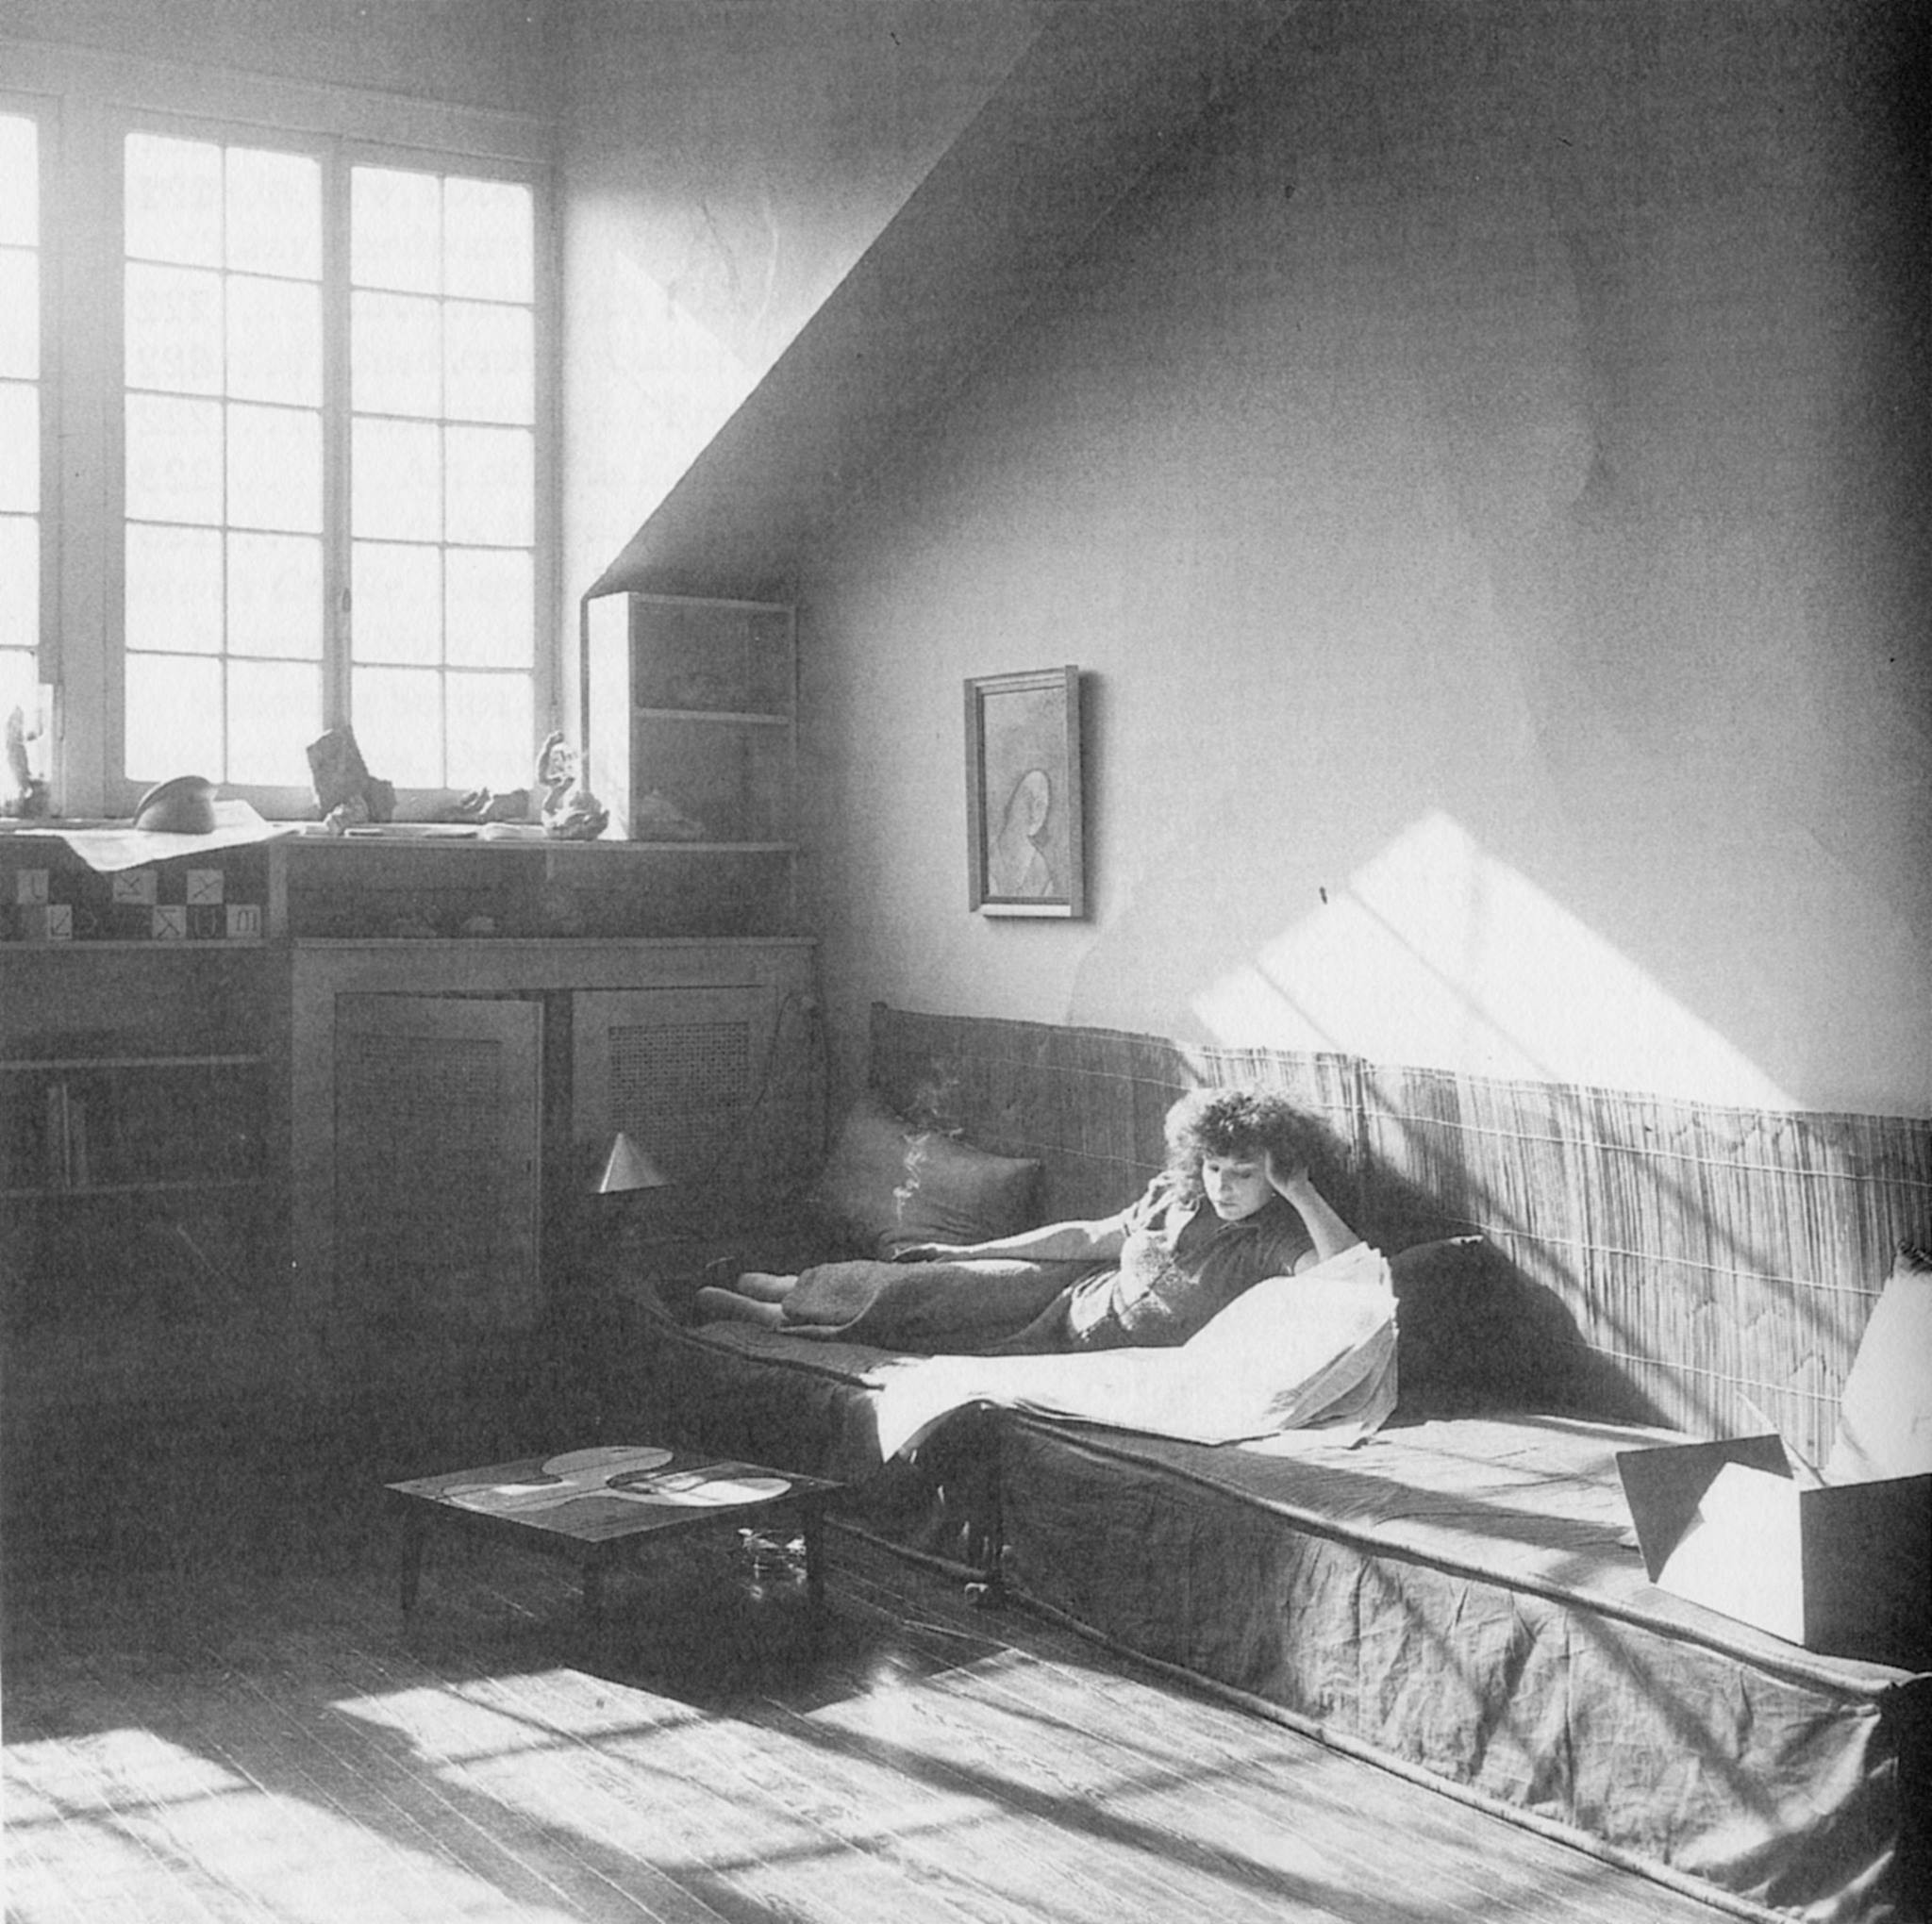 Maya Deren lounging on couch as light comes in through the window in Morton Street apartment.